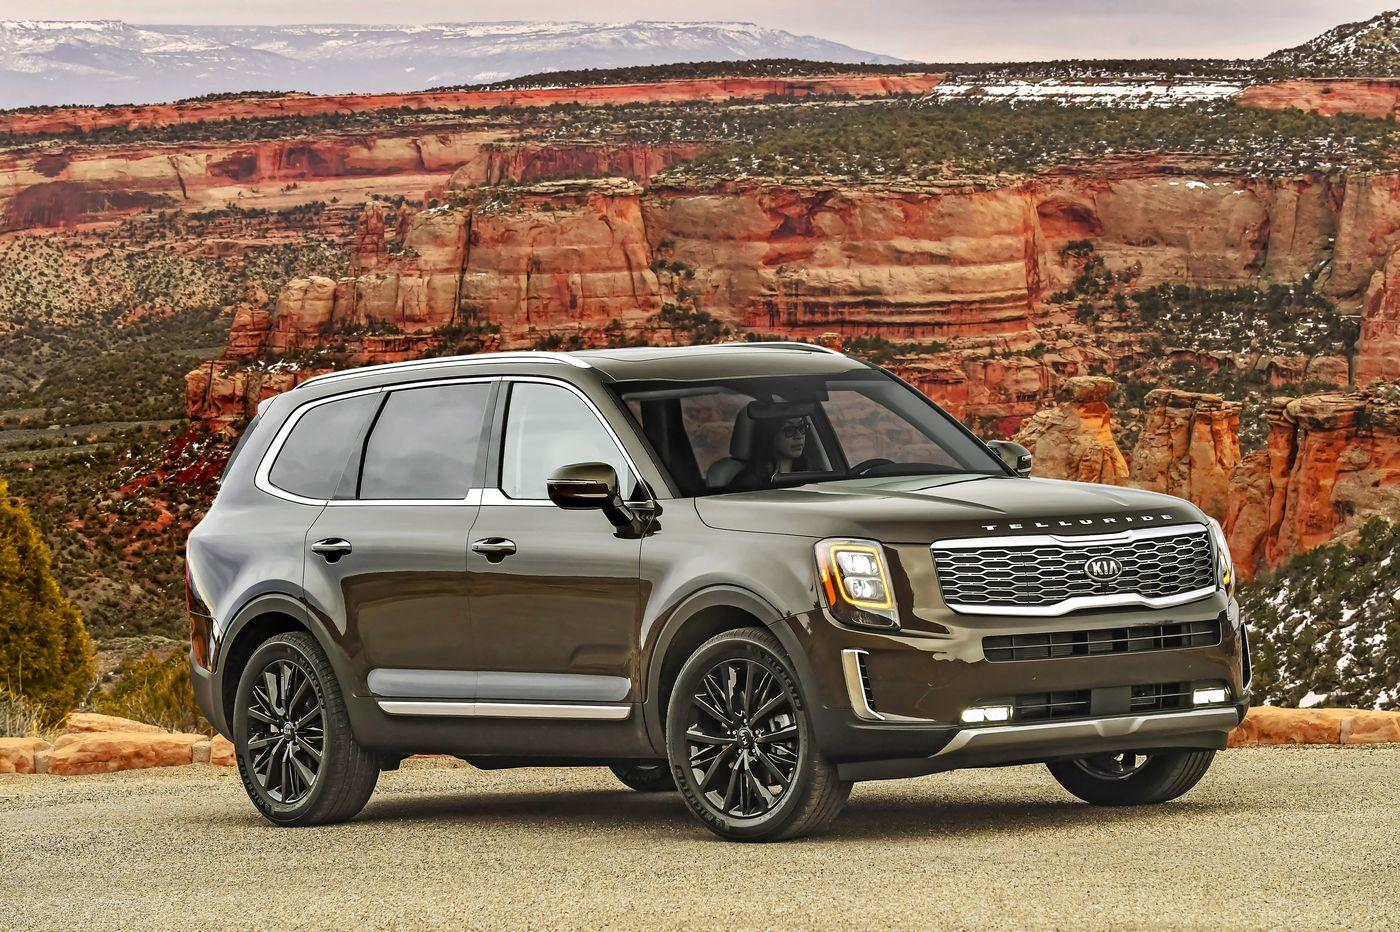 5 Of The Best 3 Row Suv Cars For A Large Family